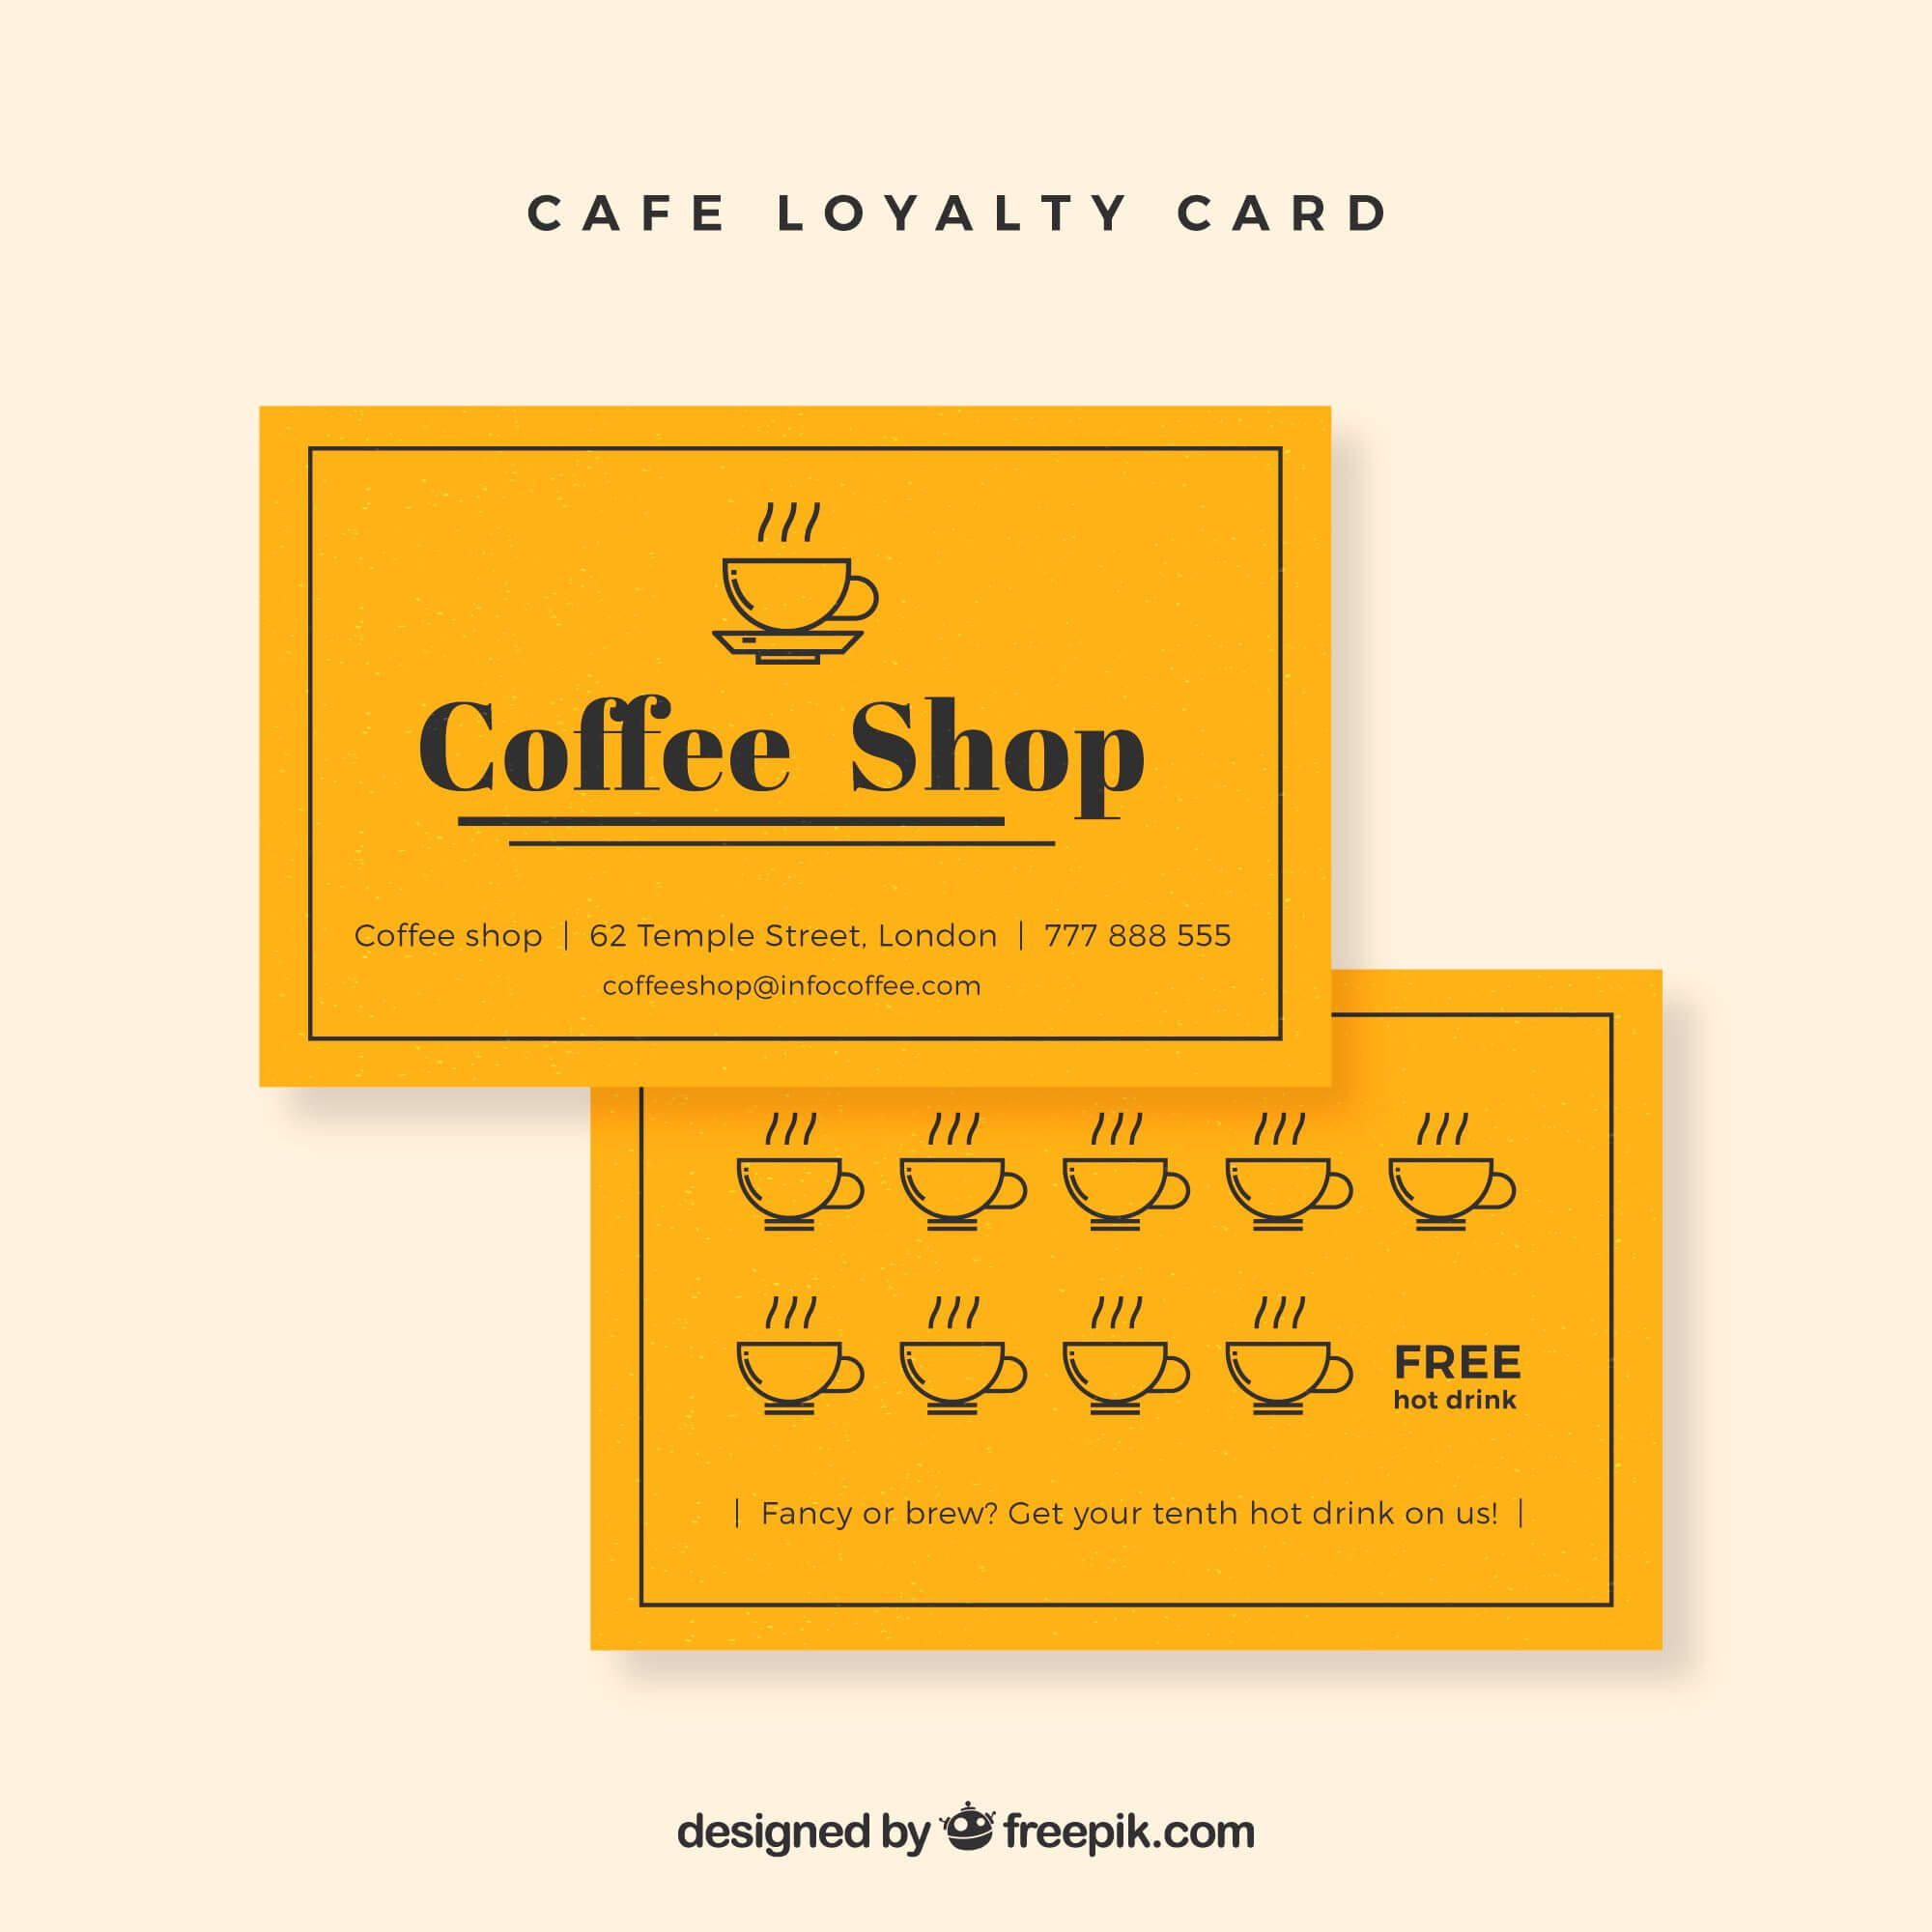 Cafe Loyalty Card | Business Cards | Loyalty Card Design Inside Loyalty Card Design Template